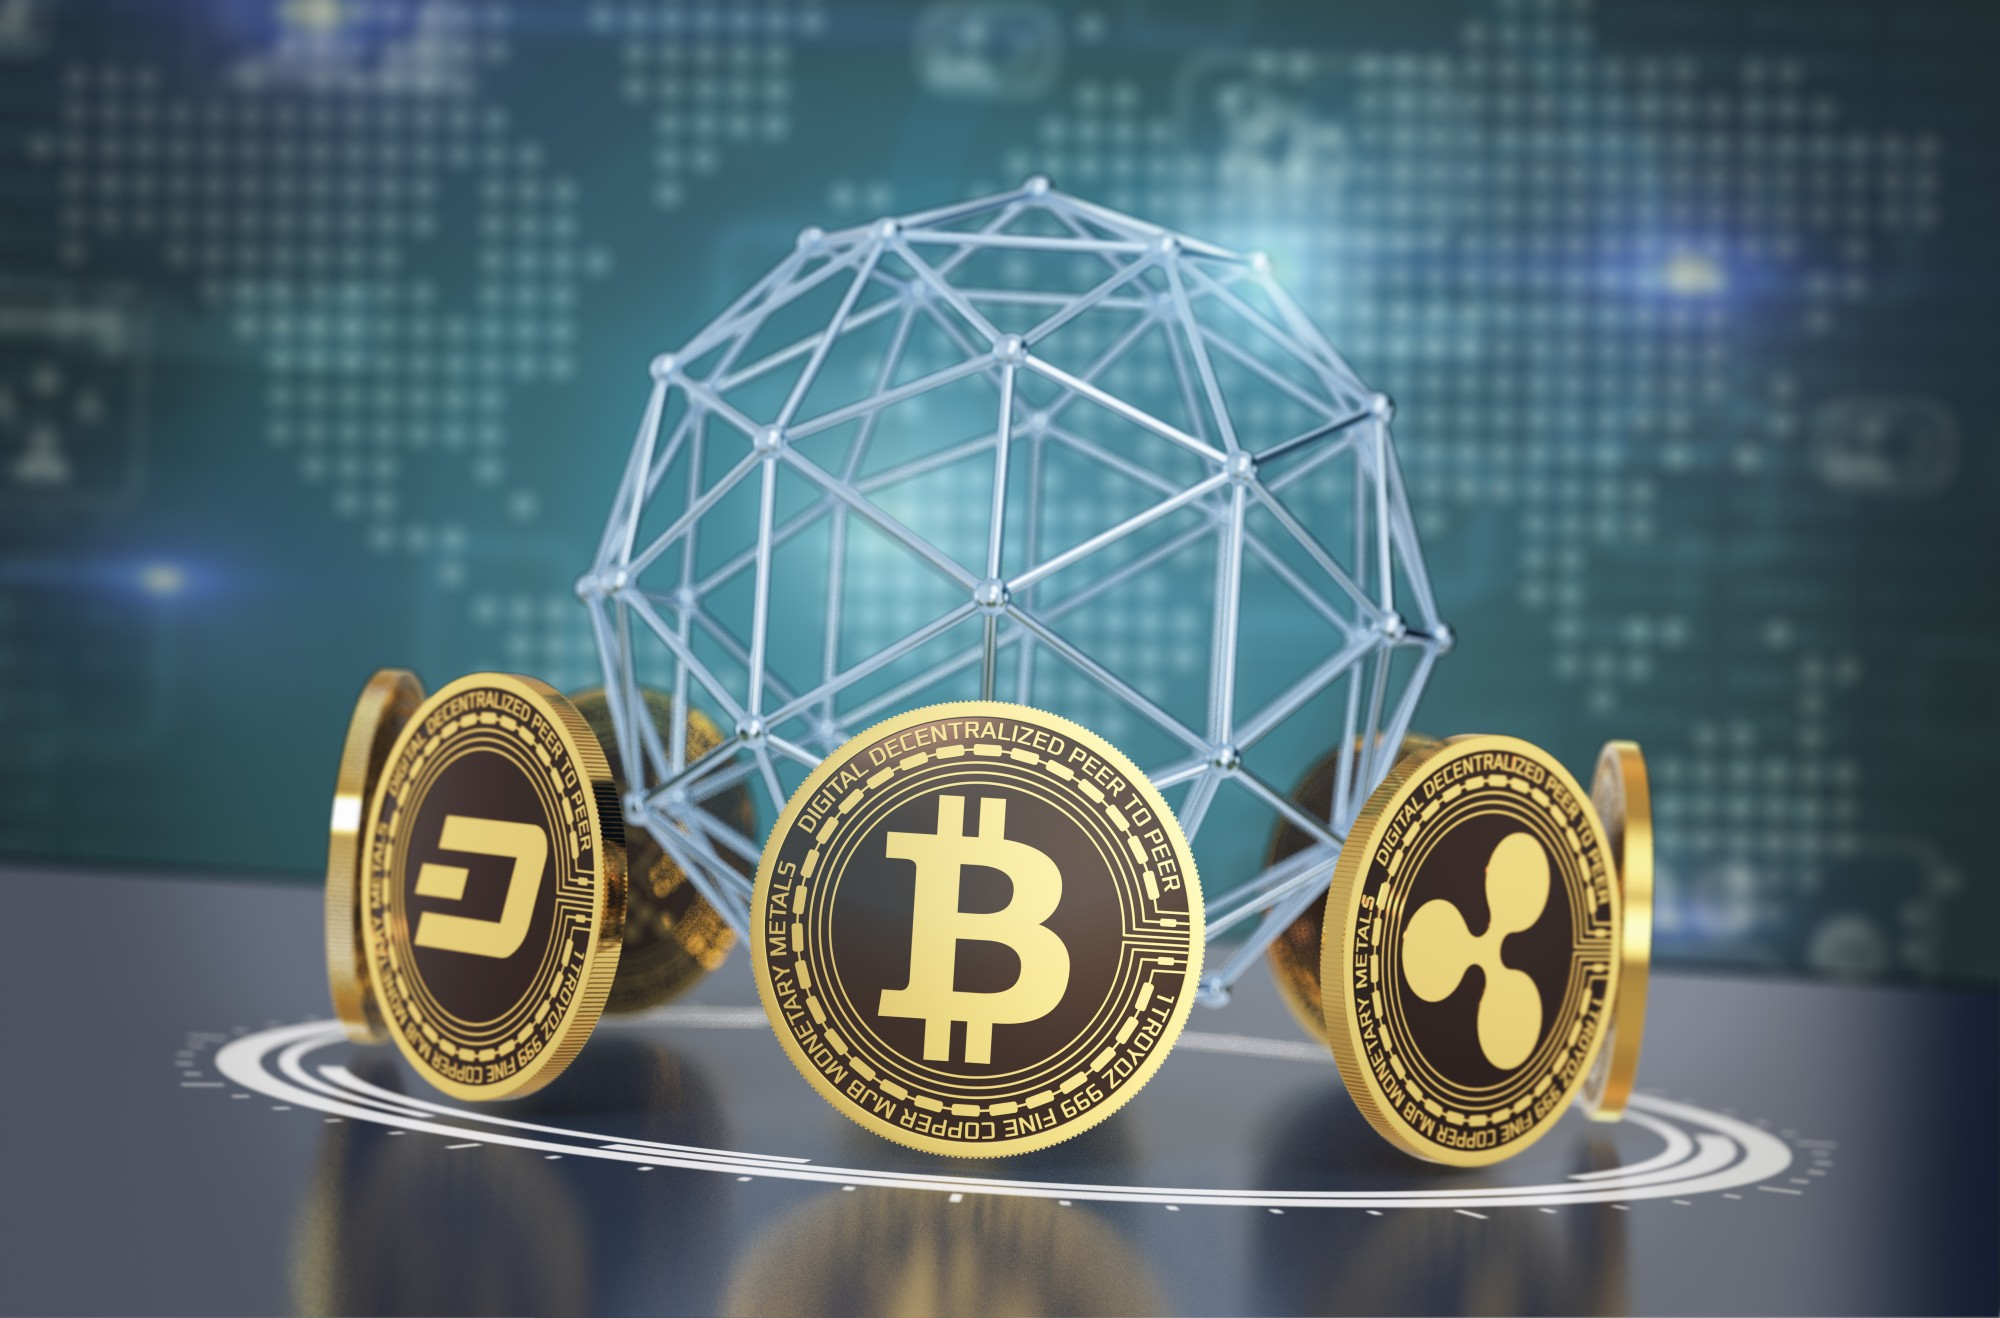 Cryptocurrencies such as Bitcoin have entered the public consciousness, thanks to the promise they offer in revolutionising the concept of money but even more lately because of their performance – albeit being accompanied by volatility. And while Bitcoin has attracted the lion's share of attention, other cryptocurrencies, also called 'Altcoins' should not be ignored – best because some offer even more promise than Bitcoin, or least because those considering investing in cryptocurrencies should diversify. Below are the top 10 'Altcoins' based on their market capitalization along with their prices in Indian rupees, sourced from WazirX.